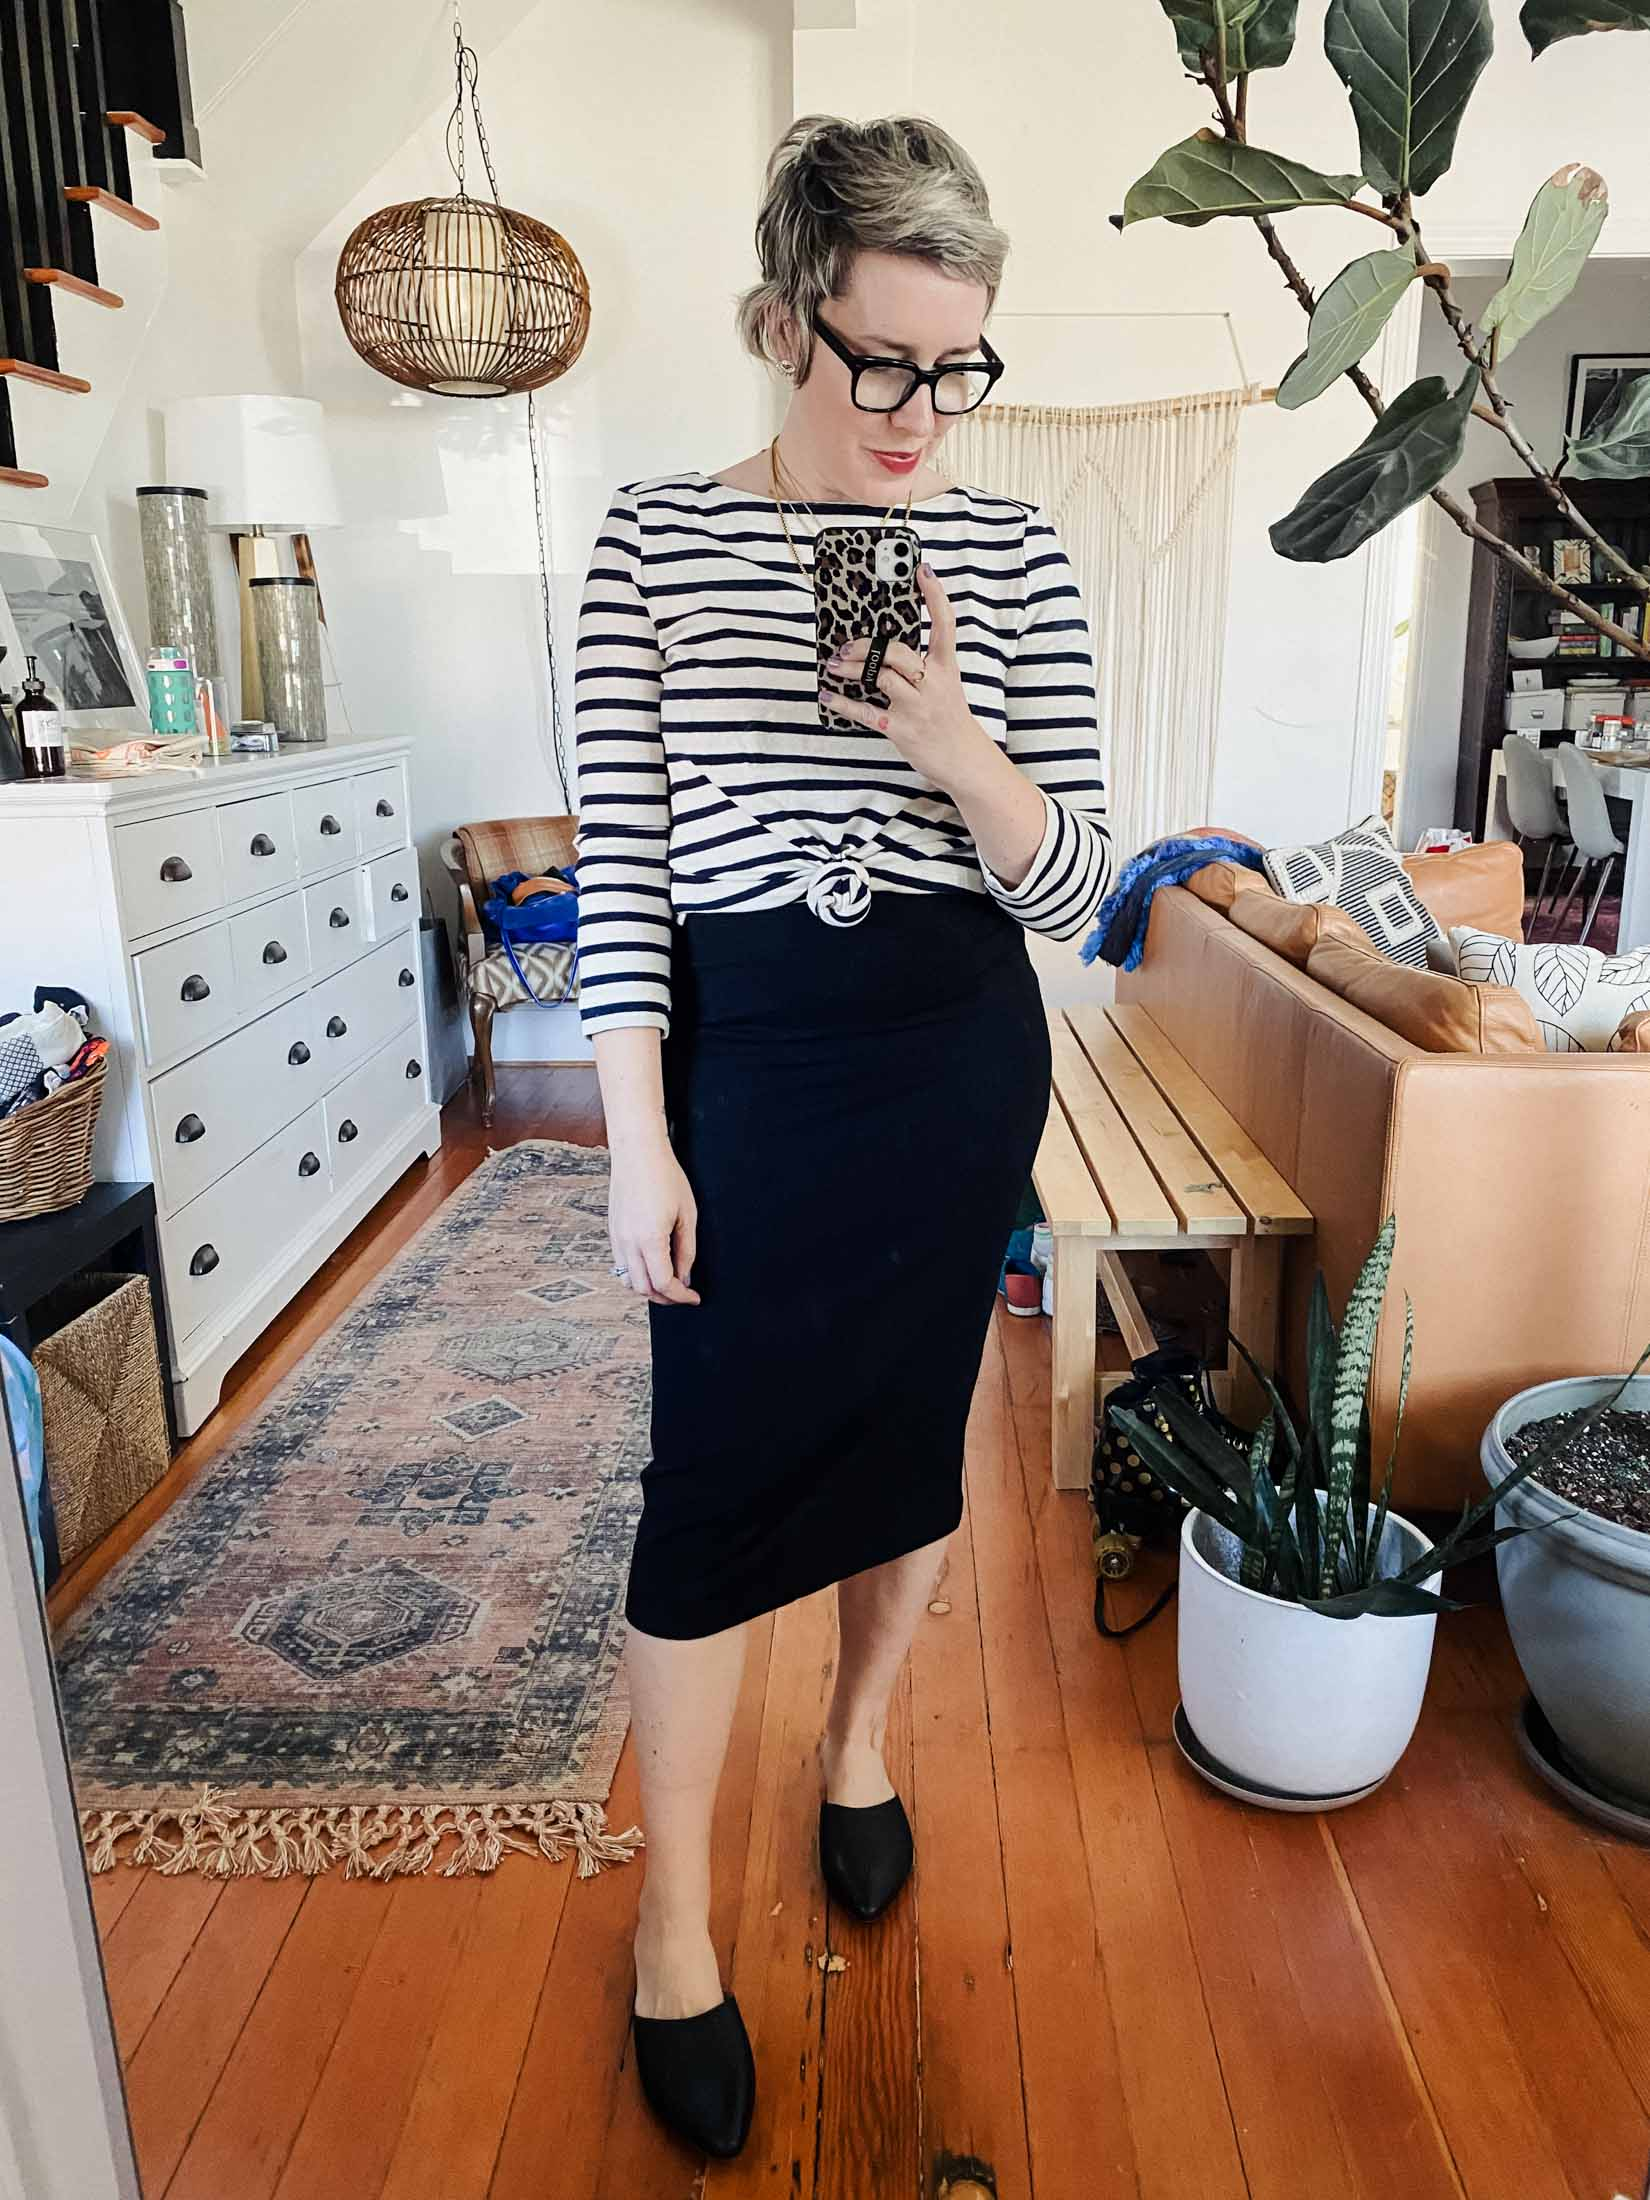 LOFT is a go-to place for spring try-ons: a great mix of casual & work-appropriate separates that always mix + match well. Stripes, leopard print & a cute midi, all inside.